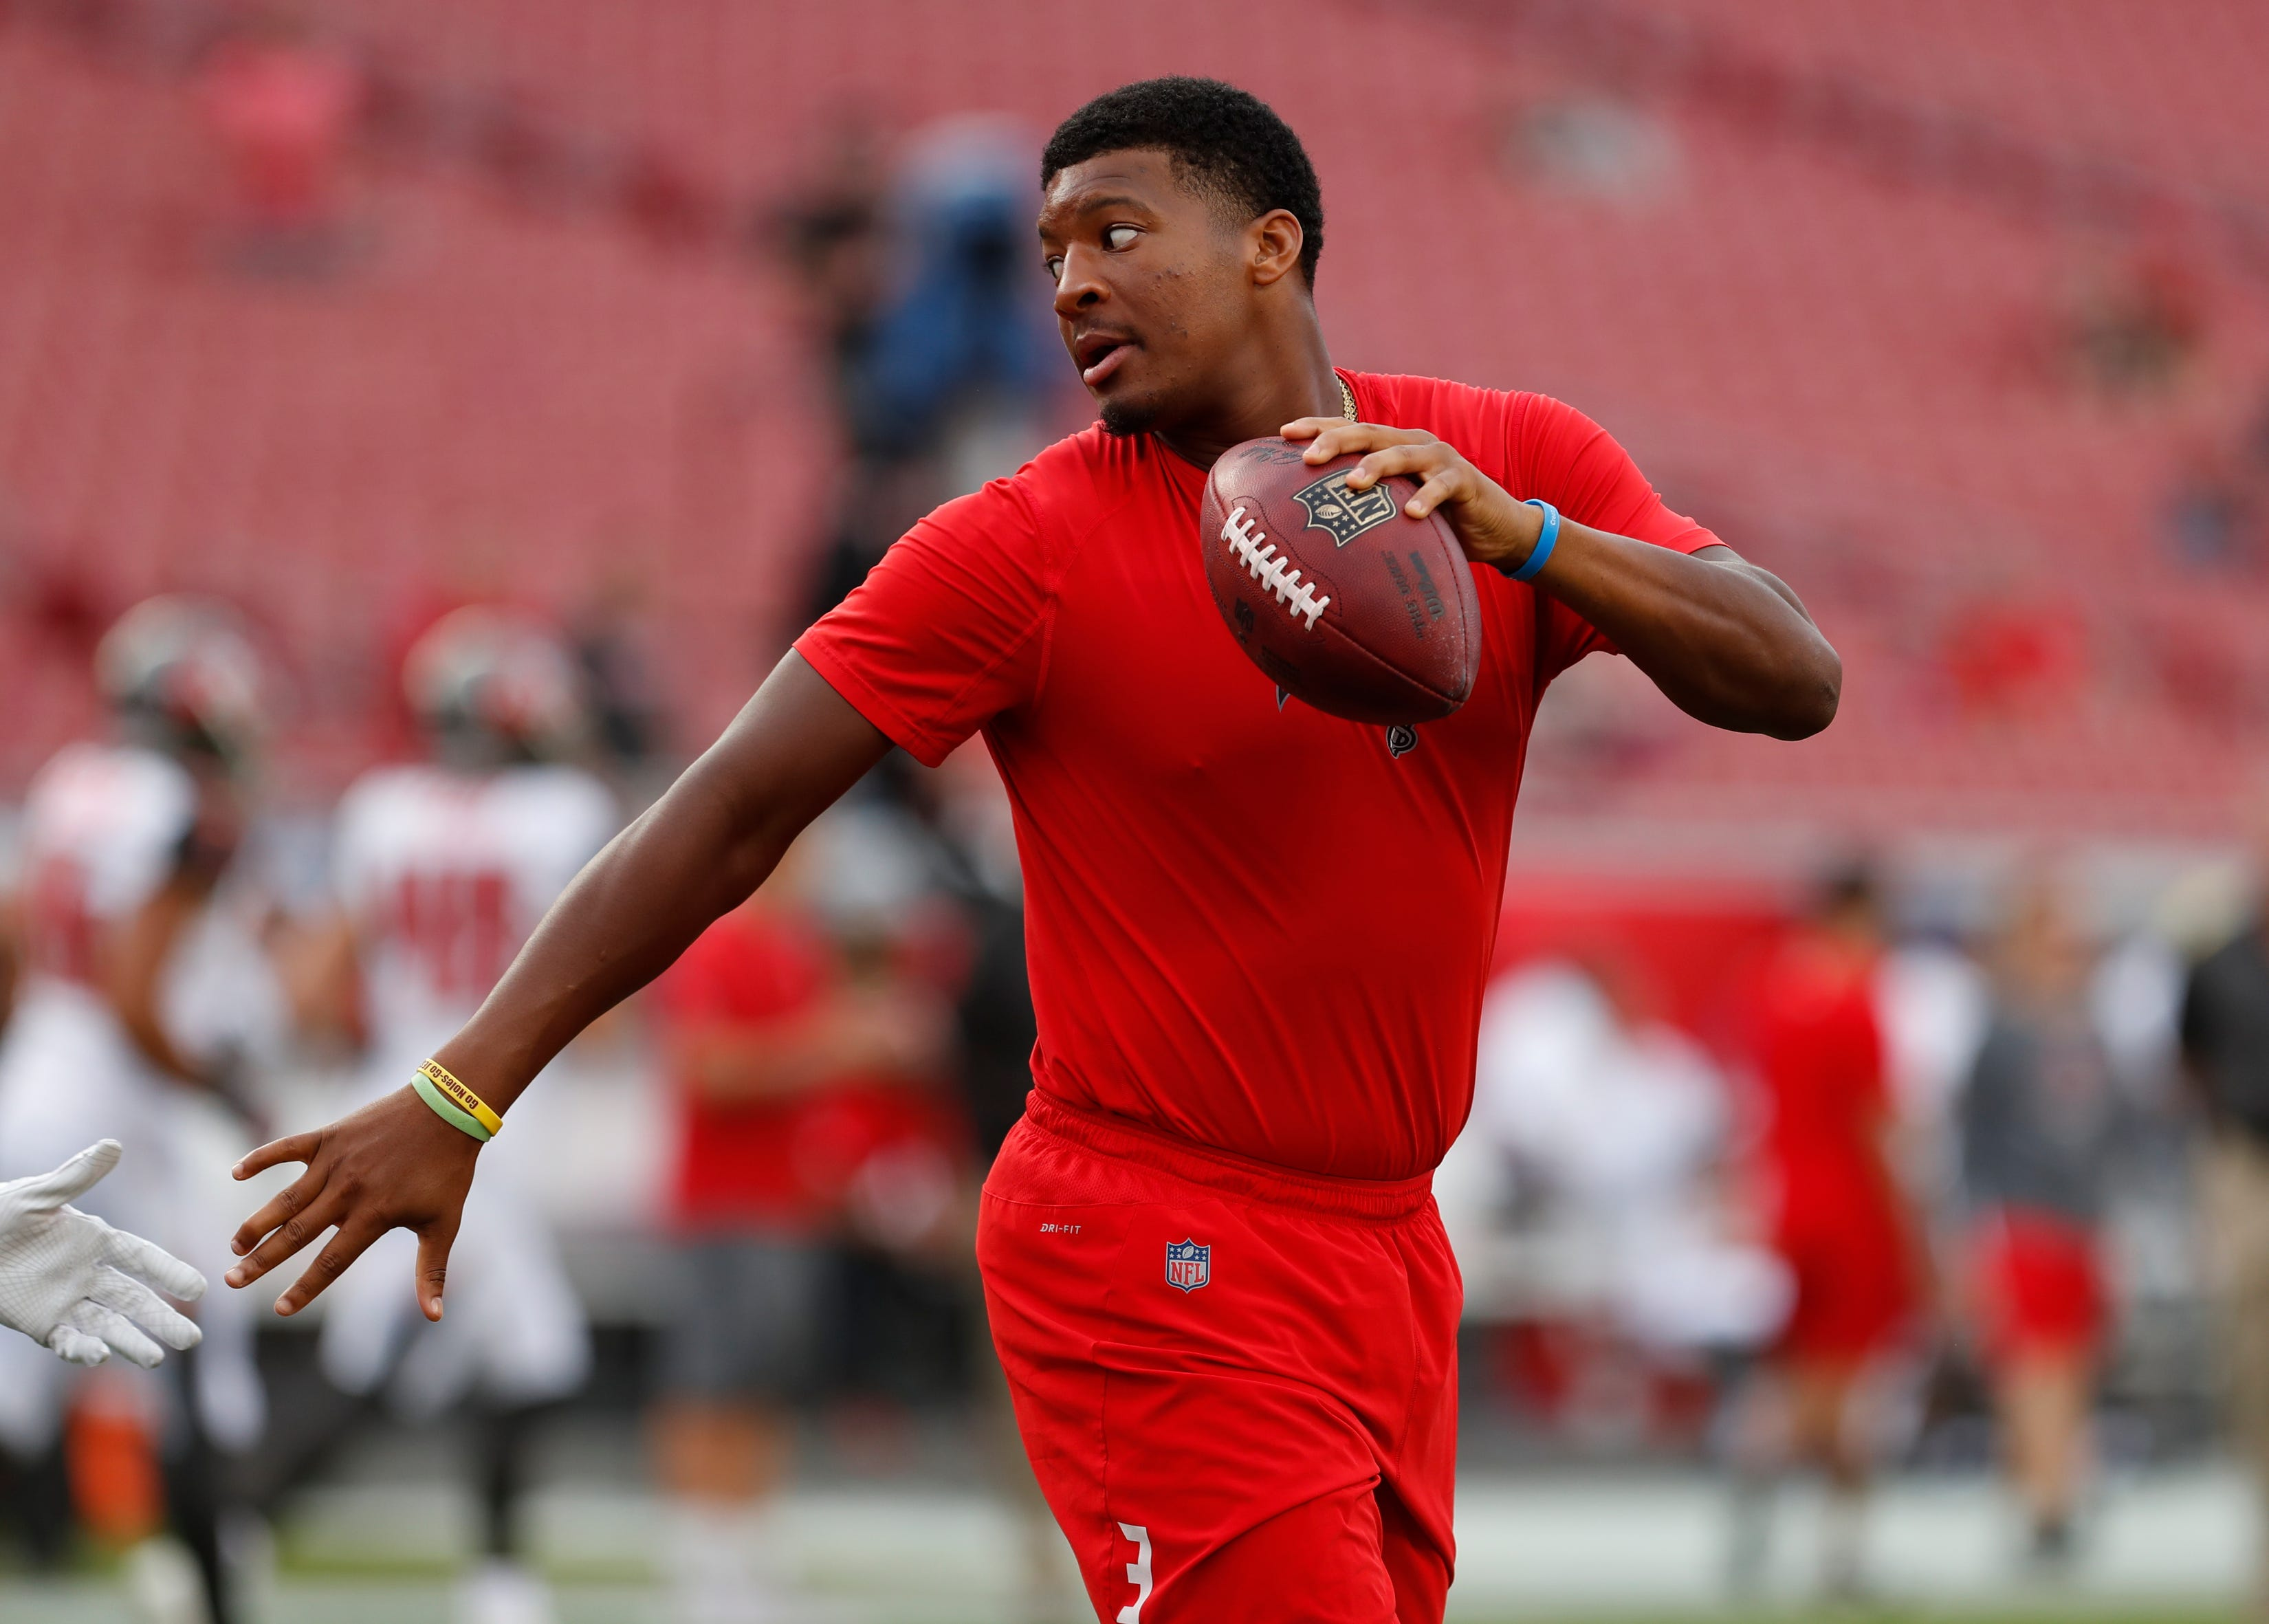 Uber driver suing Bucs' QB Winston over groping incident